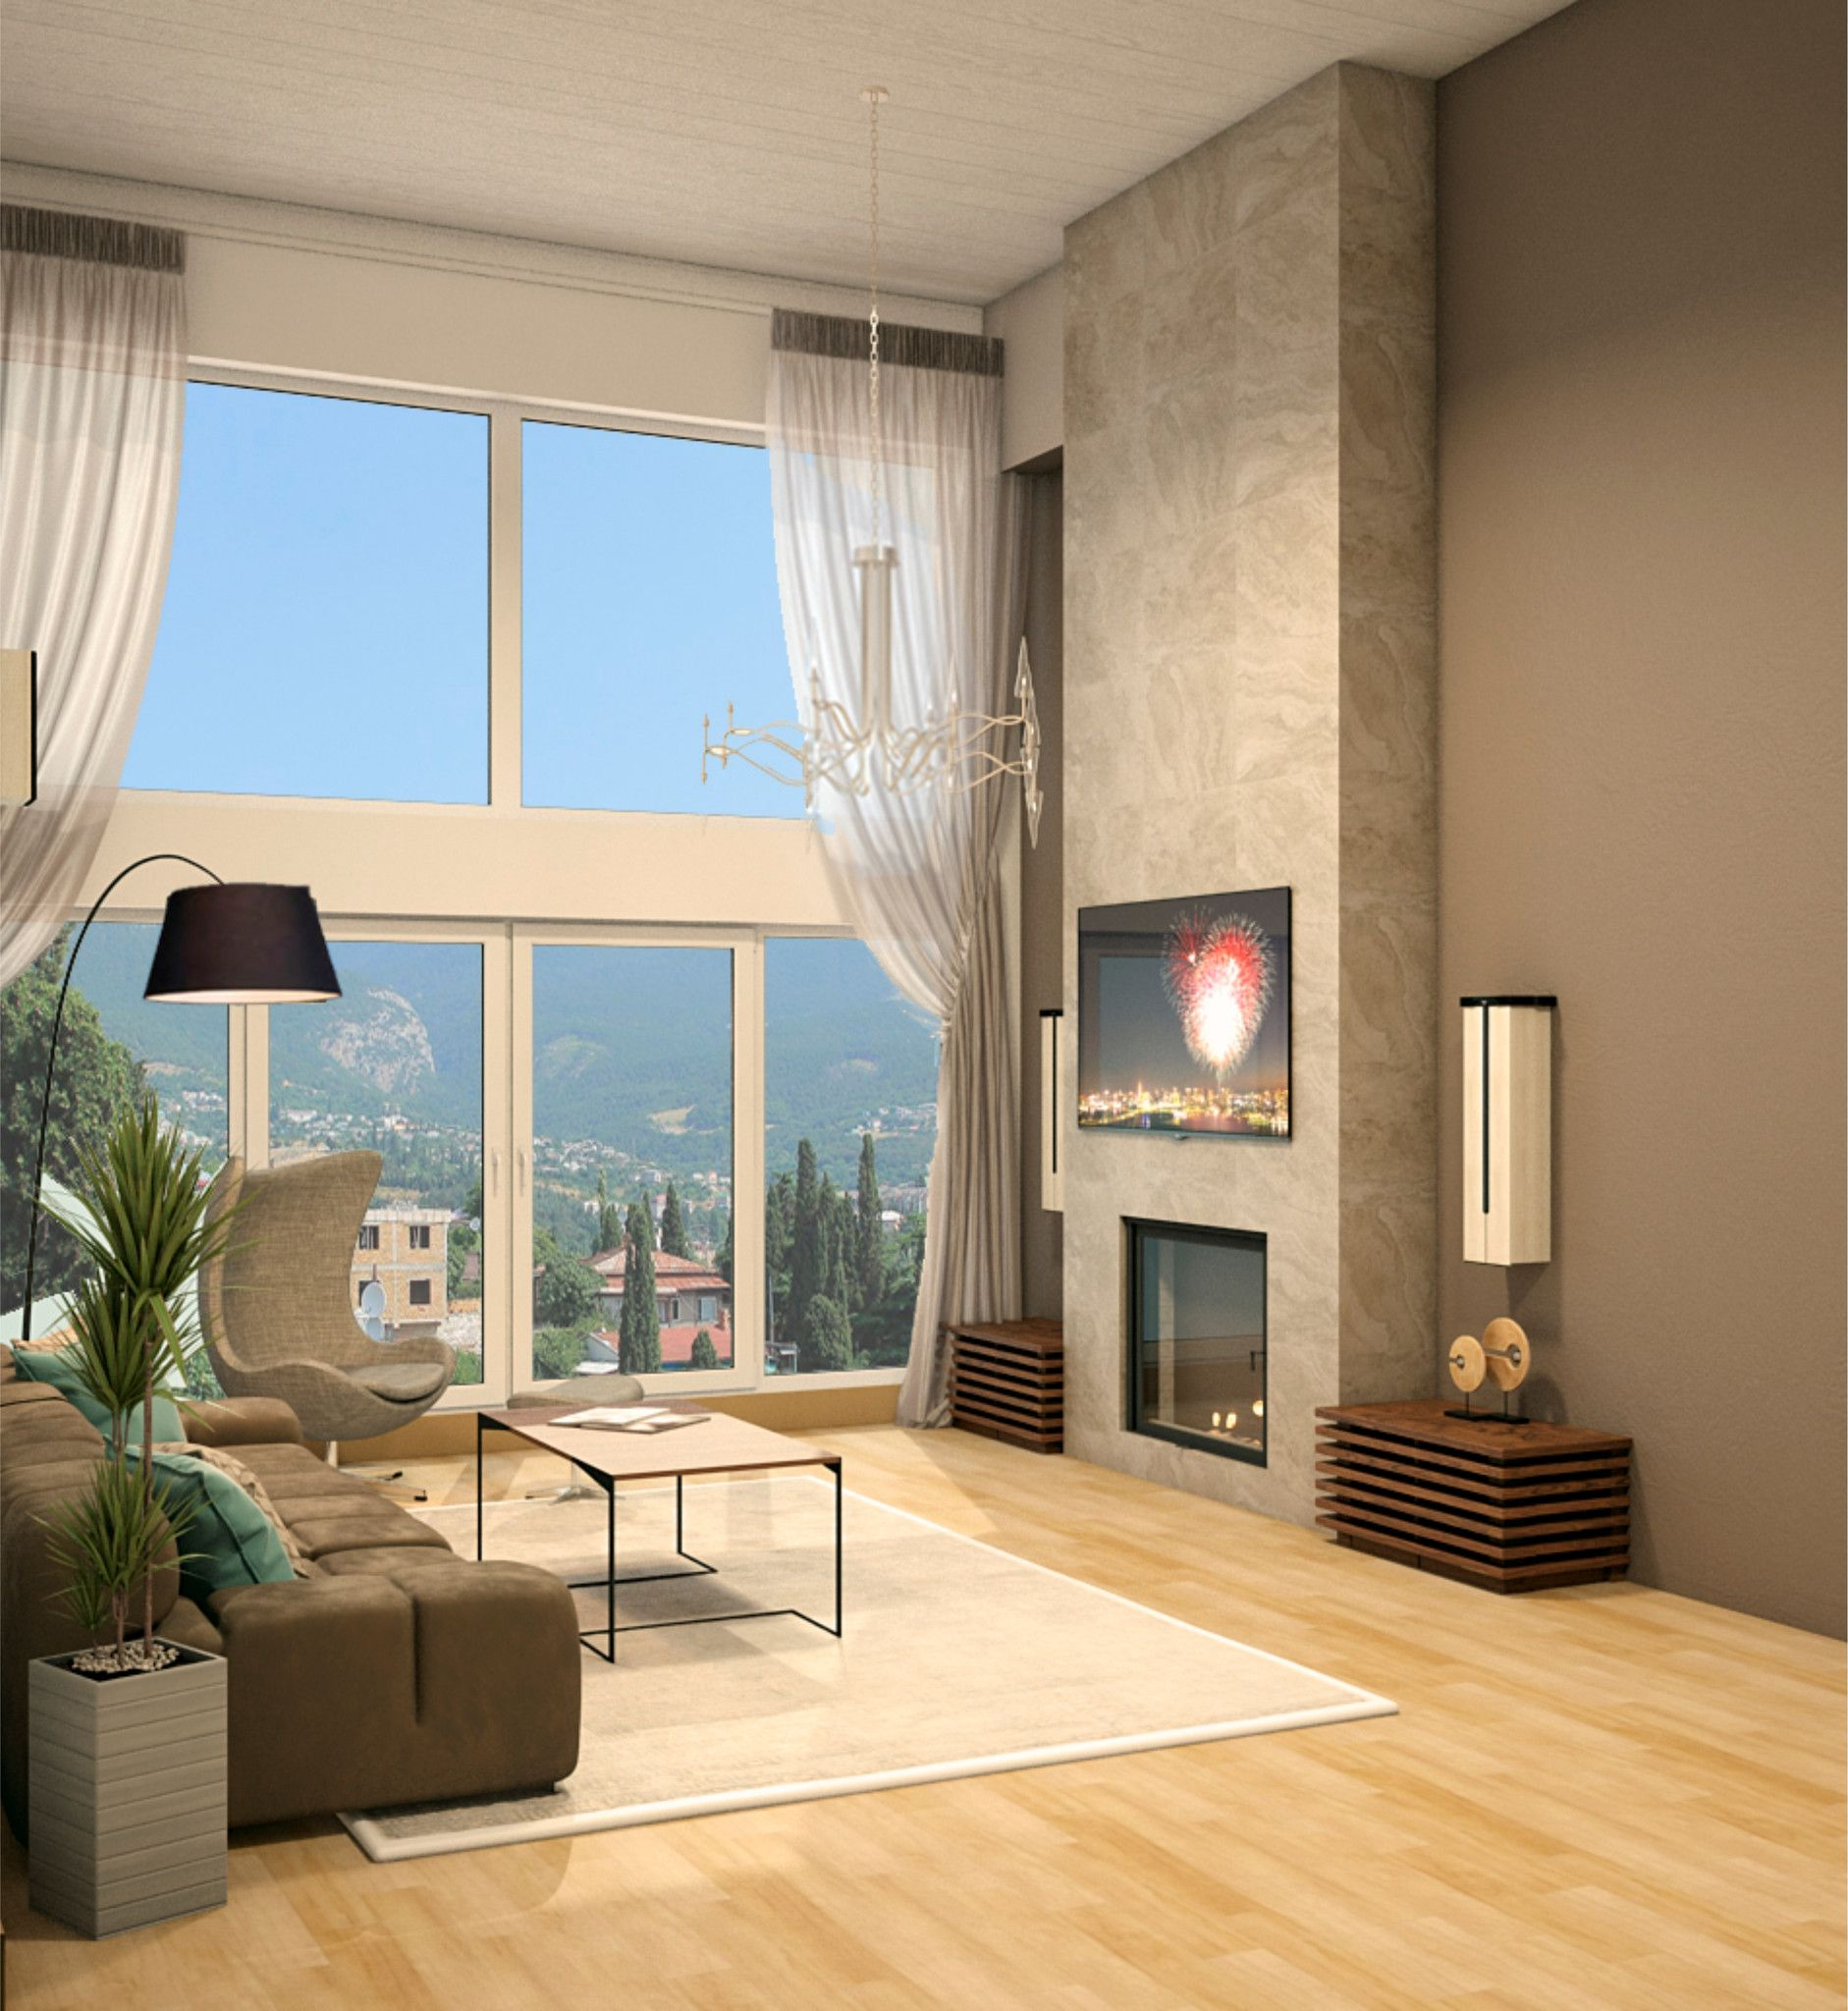 Design A Living Room Online Classy Thinking Of Shopping Emfurn But Not Sure How Your Room Will Appear Design Inspiration